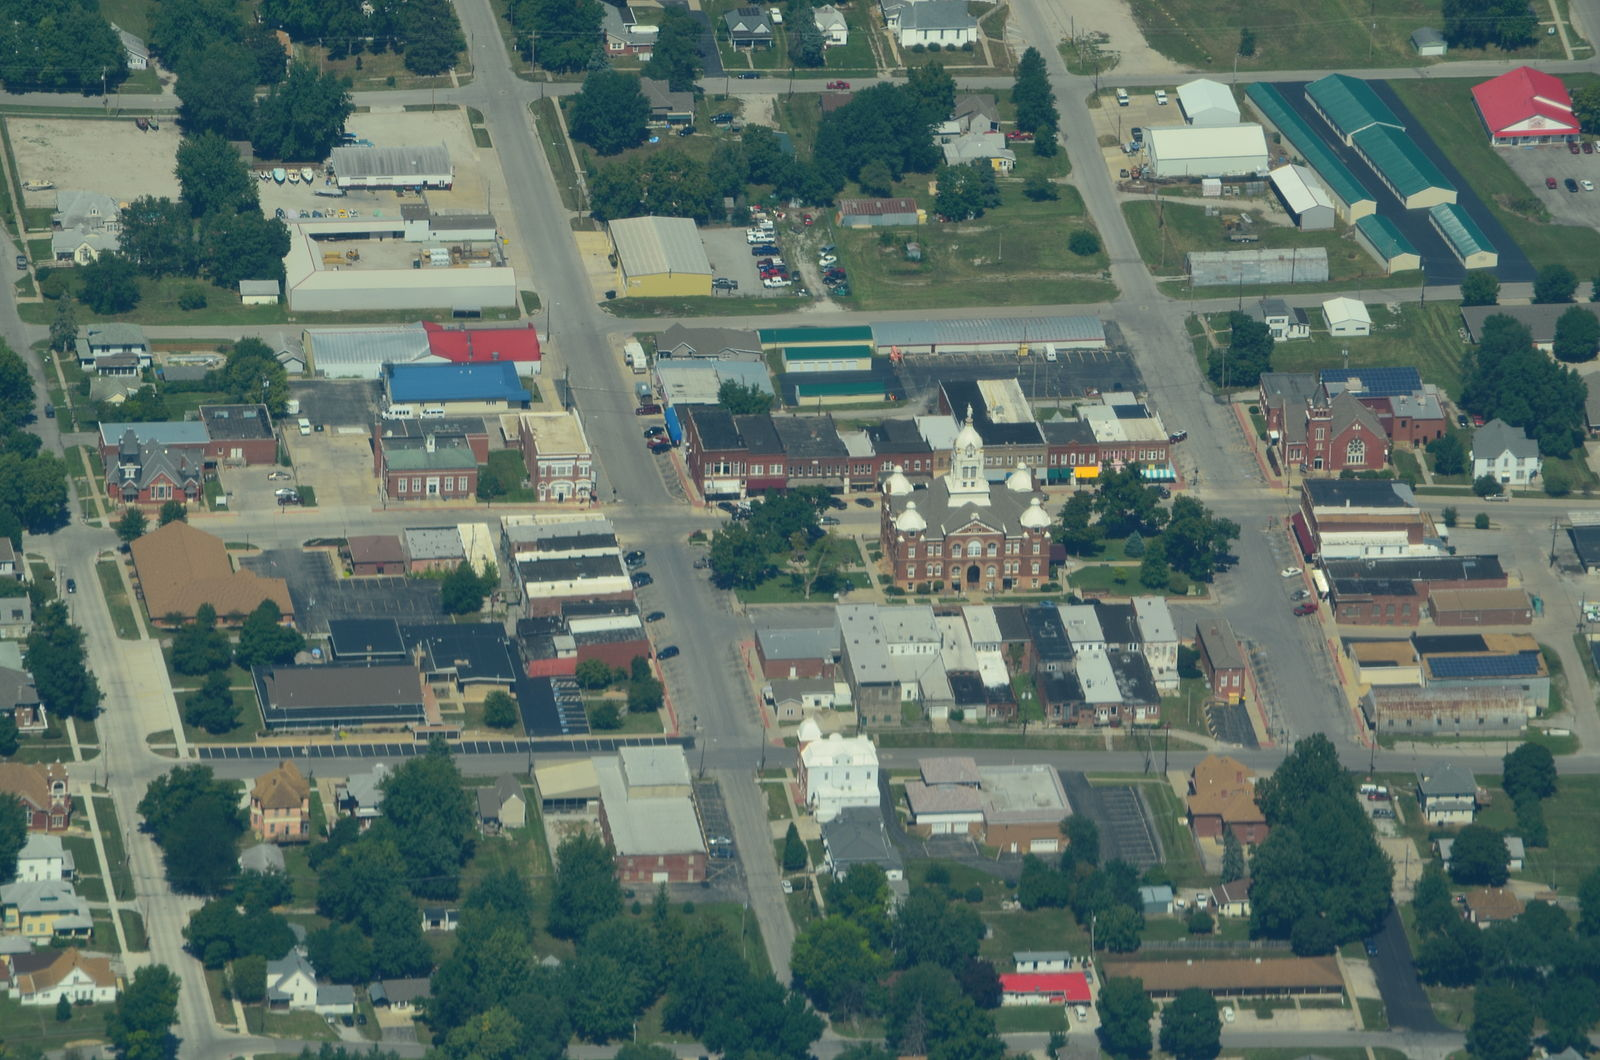 Aerial_view_of_Savannah,_Missouri_9-2-2013